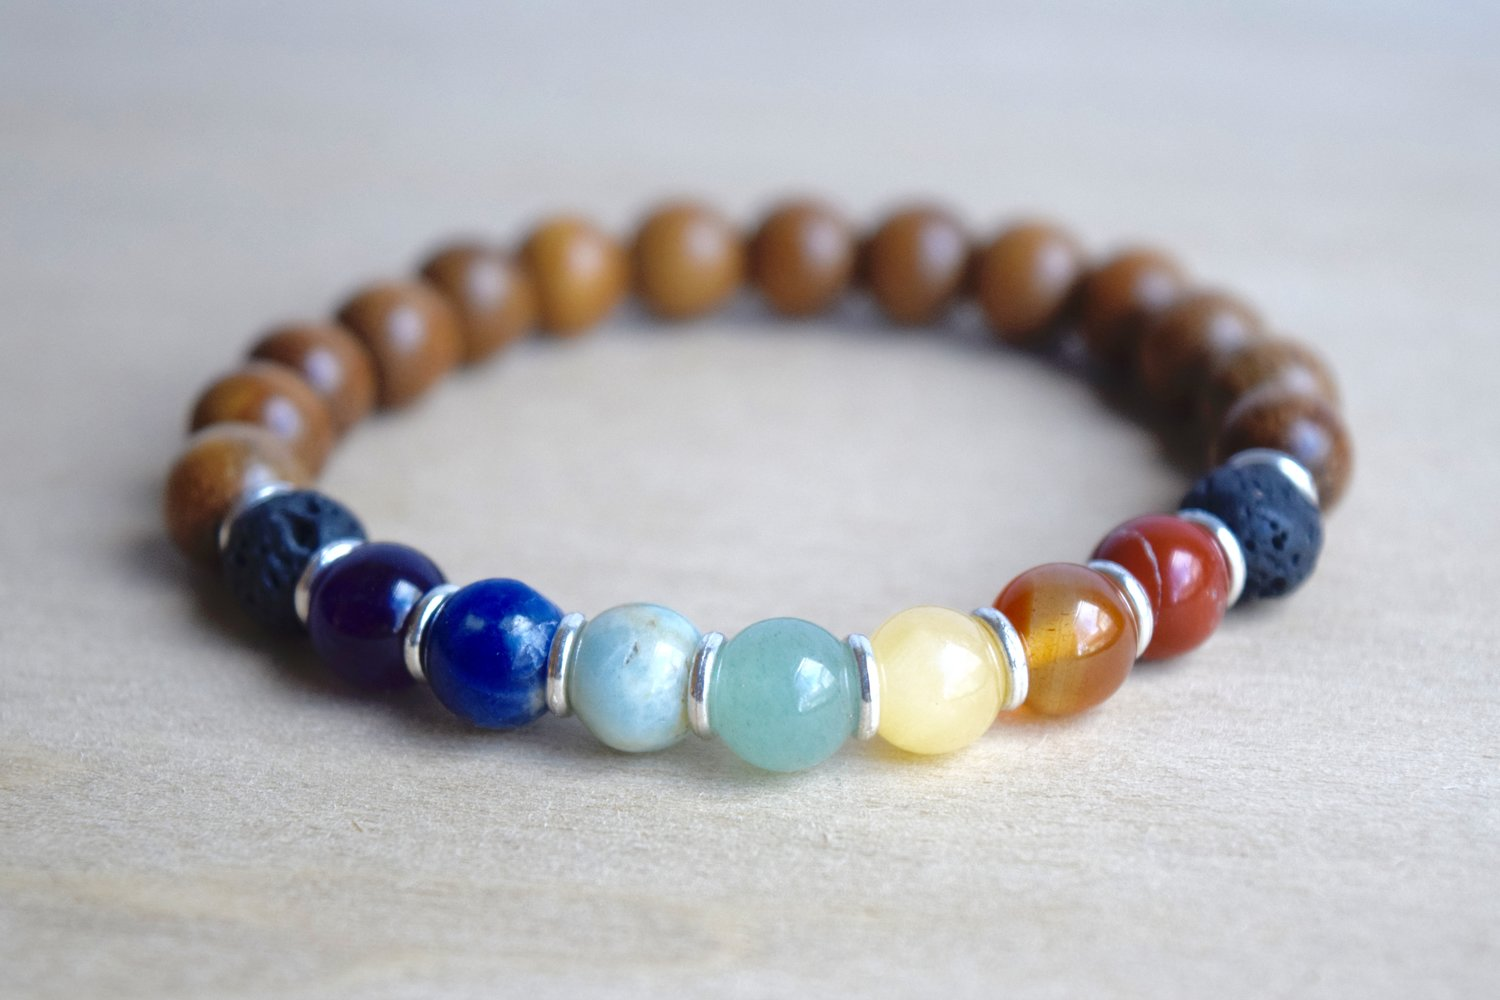 beads feminino lava charm for healing hot balance bracelet bead elephant from yoga reiki endless chakra jewelry bracelets item matte august stone wom in prayer